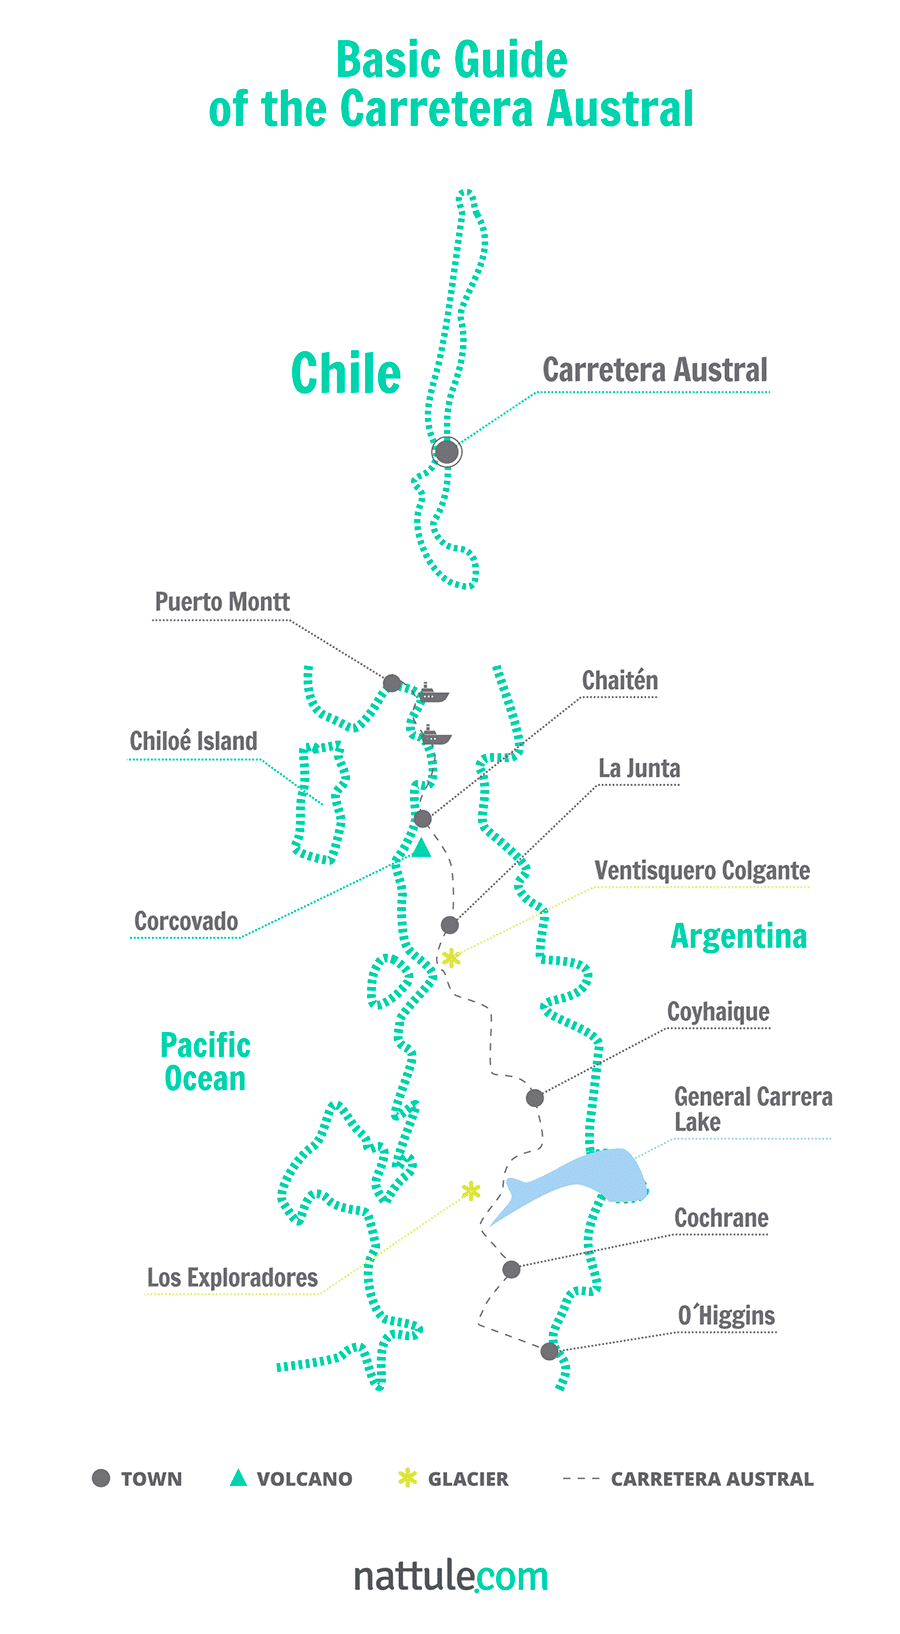 Basic Guide of the Carretera Austral